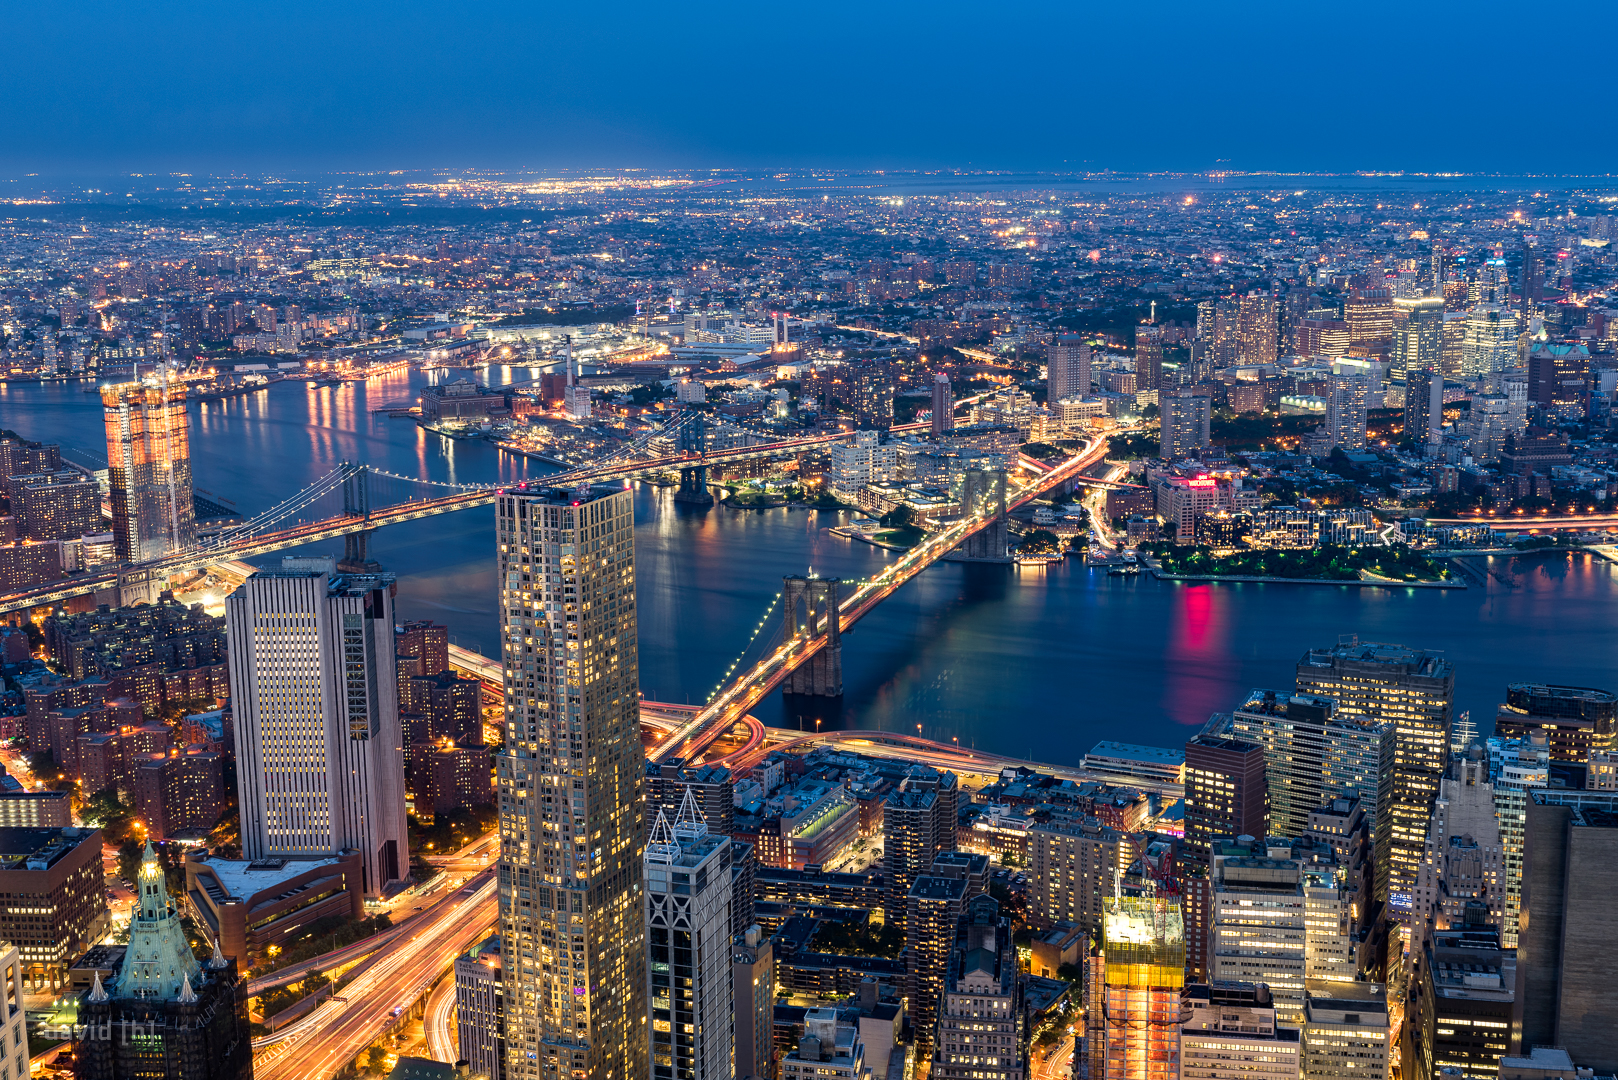 East River with Brooklyn and Manhattan Bridge during the blue hour of dusk, as seen from One World Observatory.